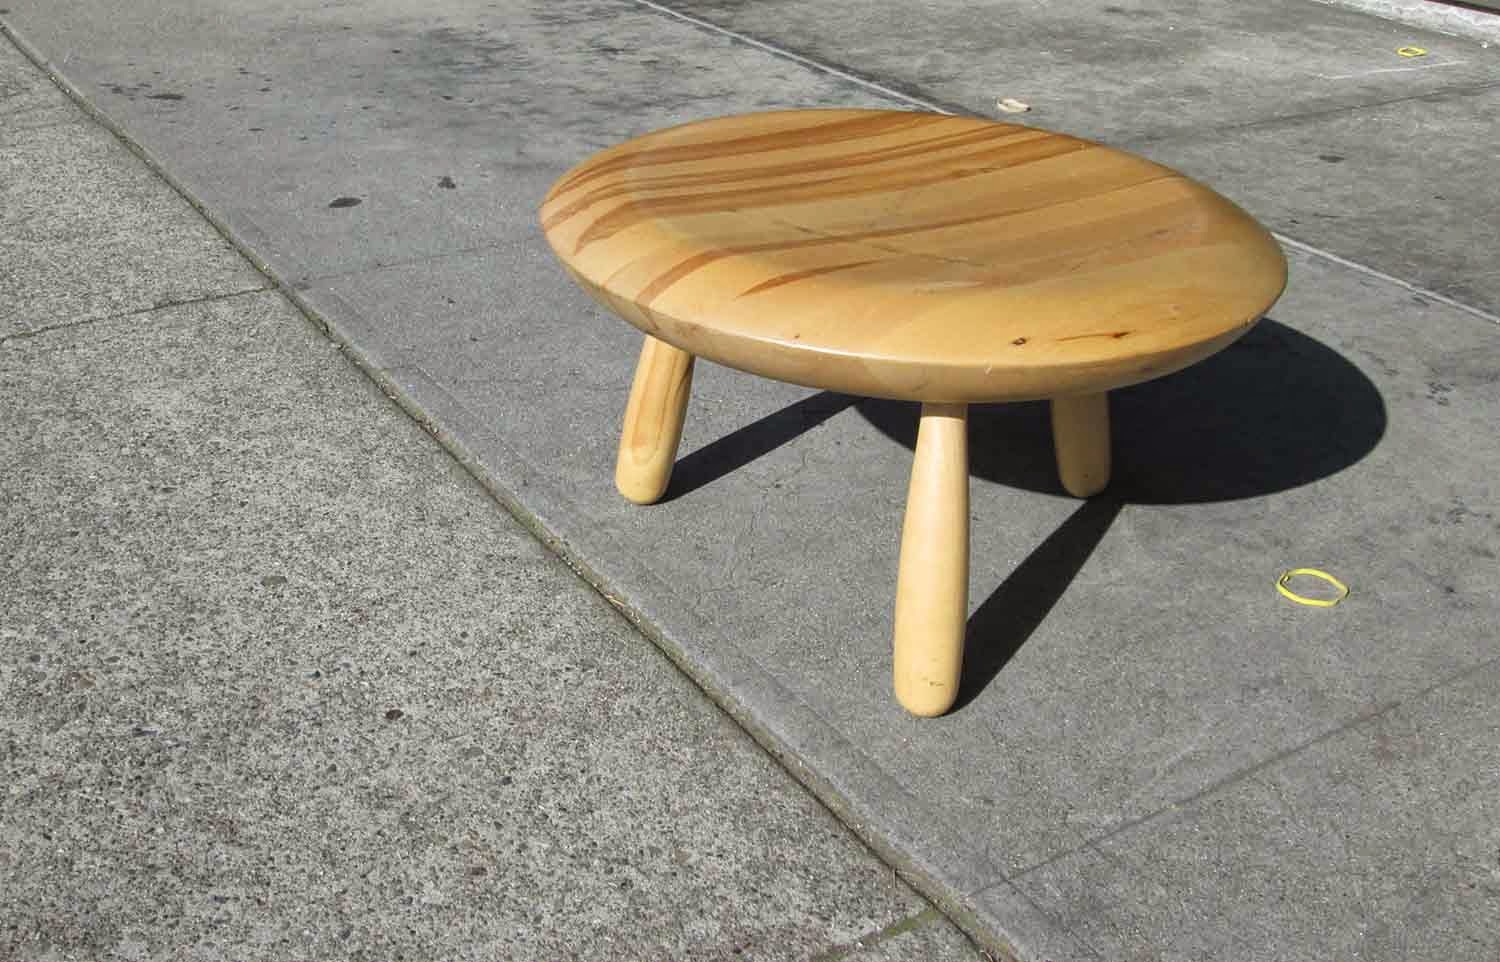 #927339 UHURU FURNITURE & COLLECTIBLES: SOLD Ikea Wood Foot Stool $20 with 1500x962 px of Most Effective Ikea Wood Stool 9621500 wallpaper @ avoidforclosure.info